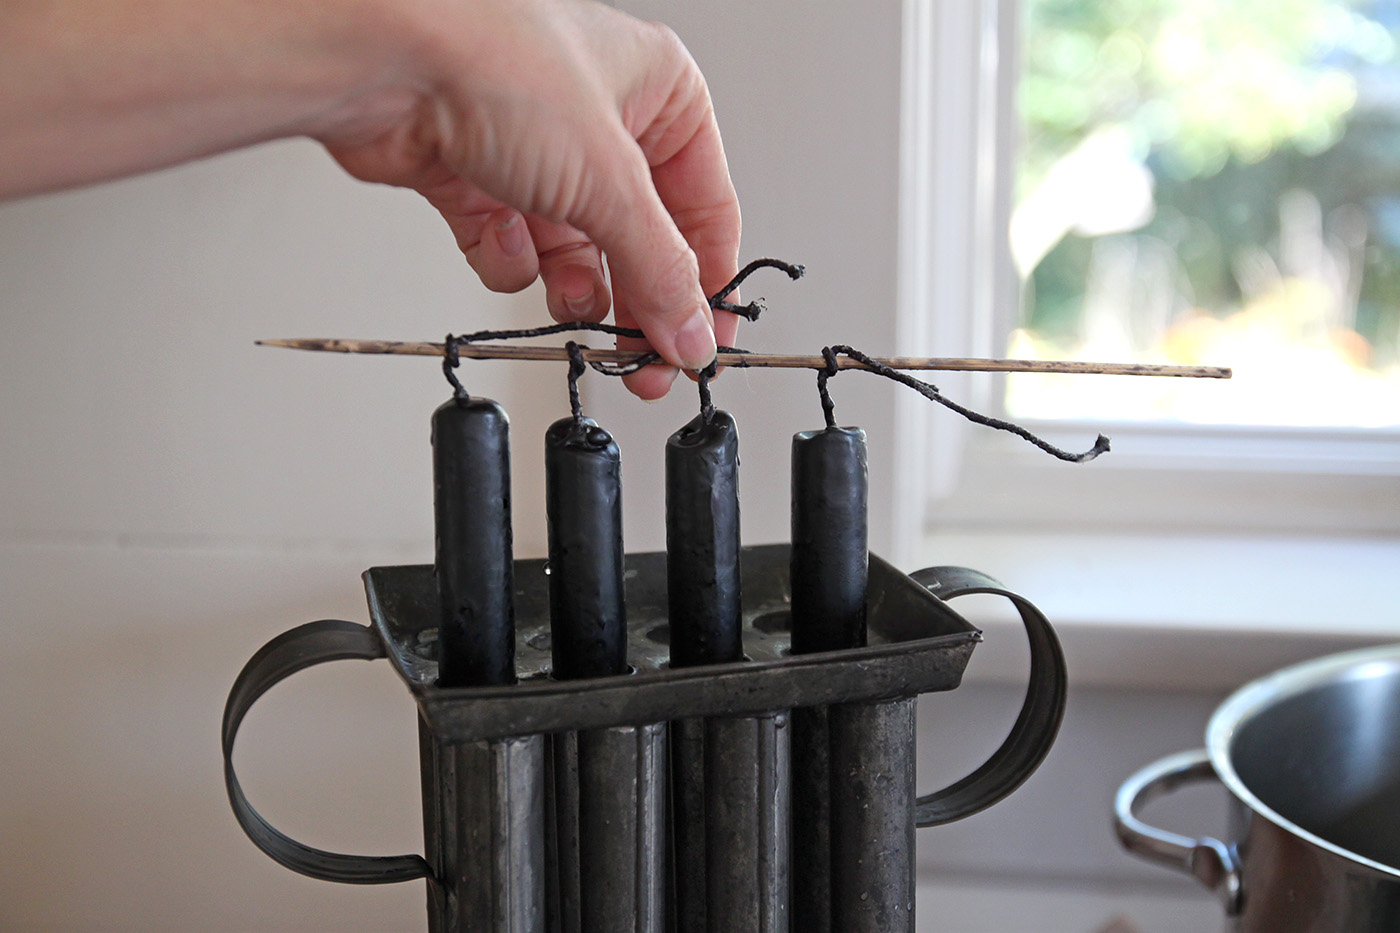 black beeswax candles DIY, taking from mold, by Justine Hand for Remodelista